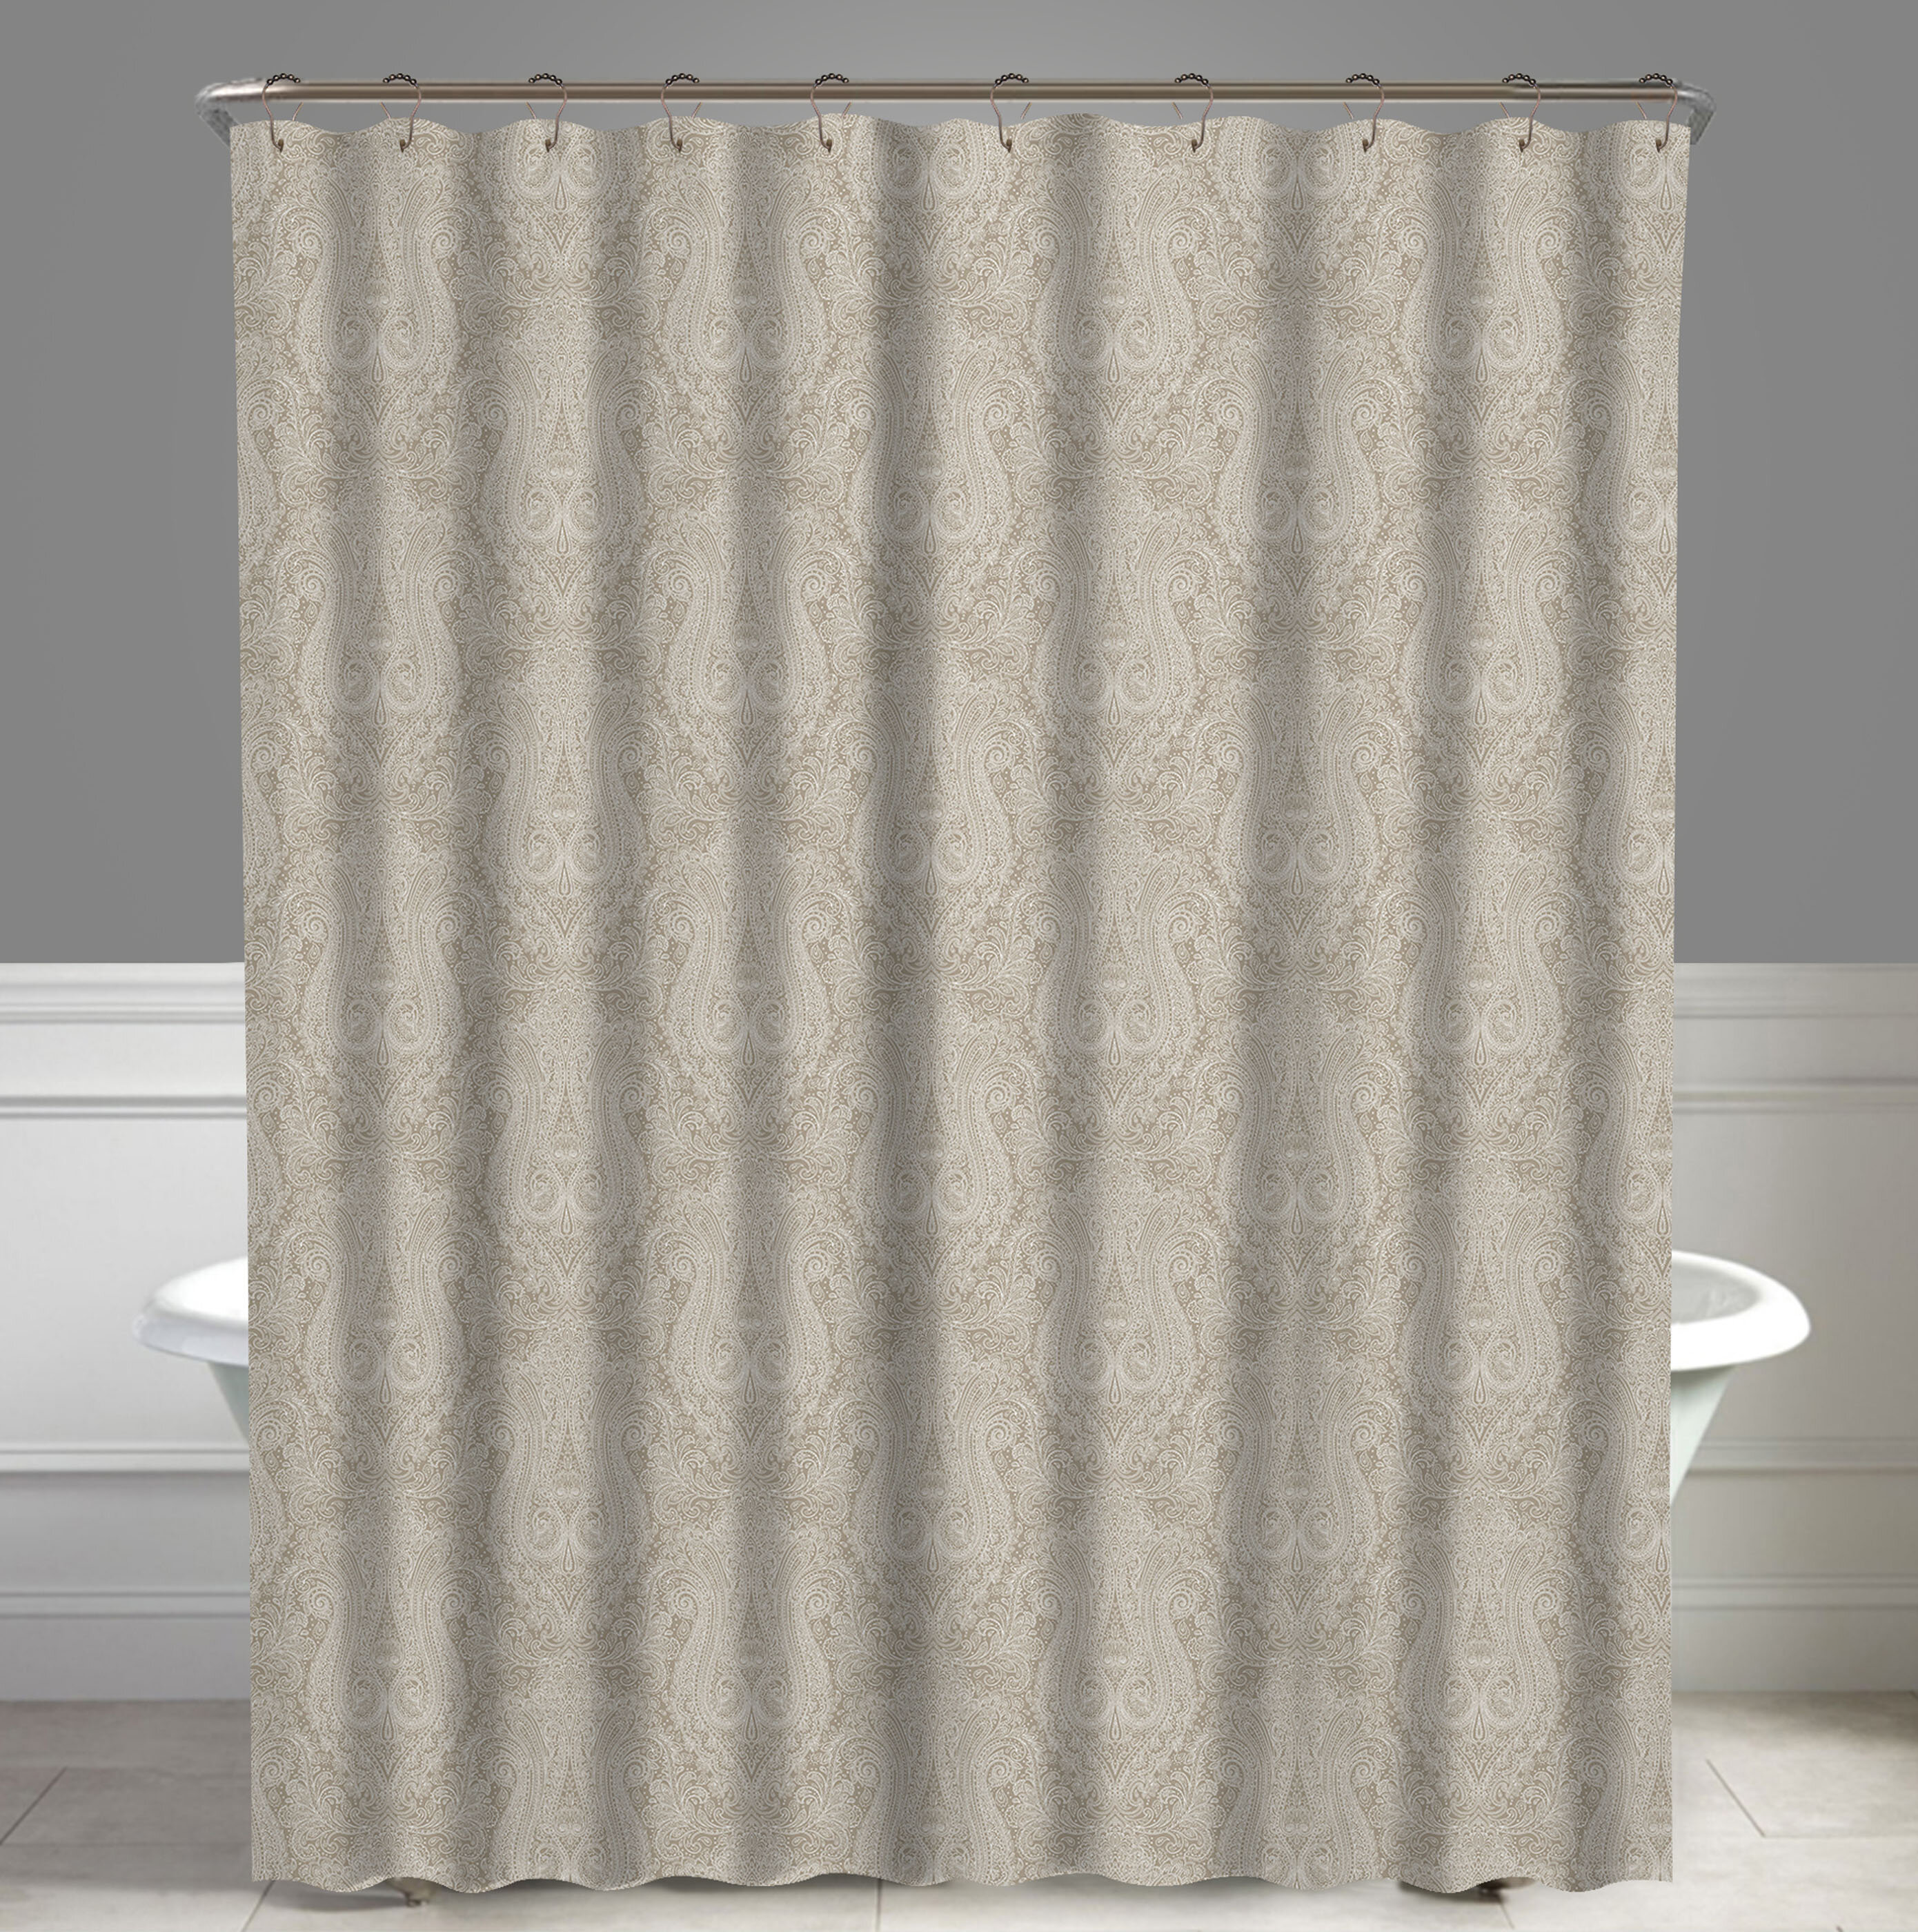 Bath Room Rugs Shower Curtains Shower Liners You Ll Love In 2021 Wayfair